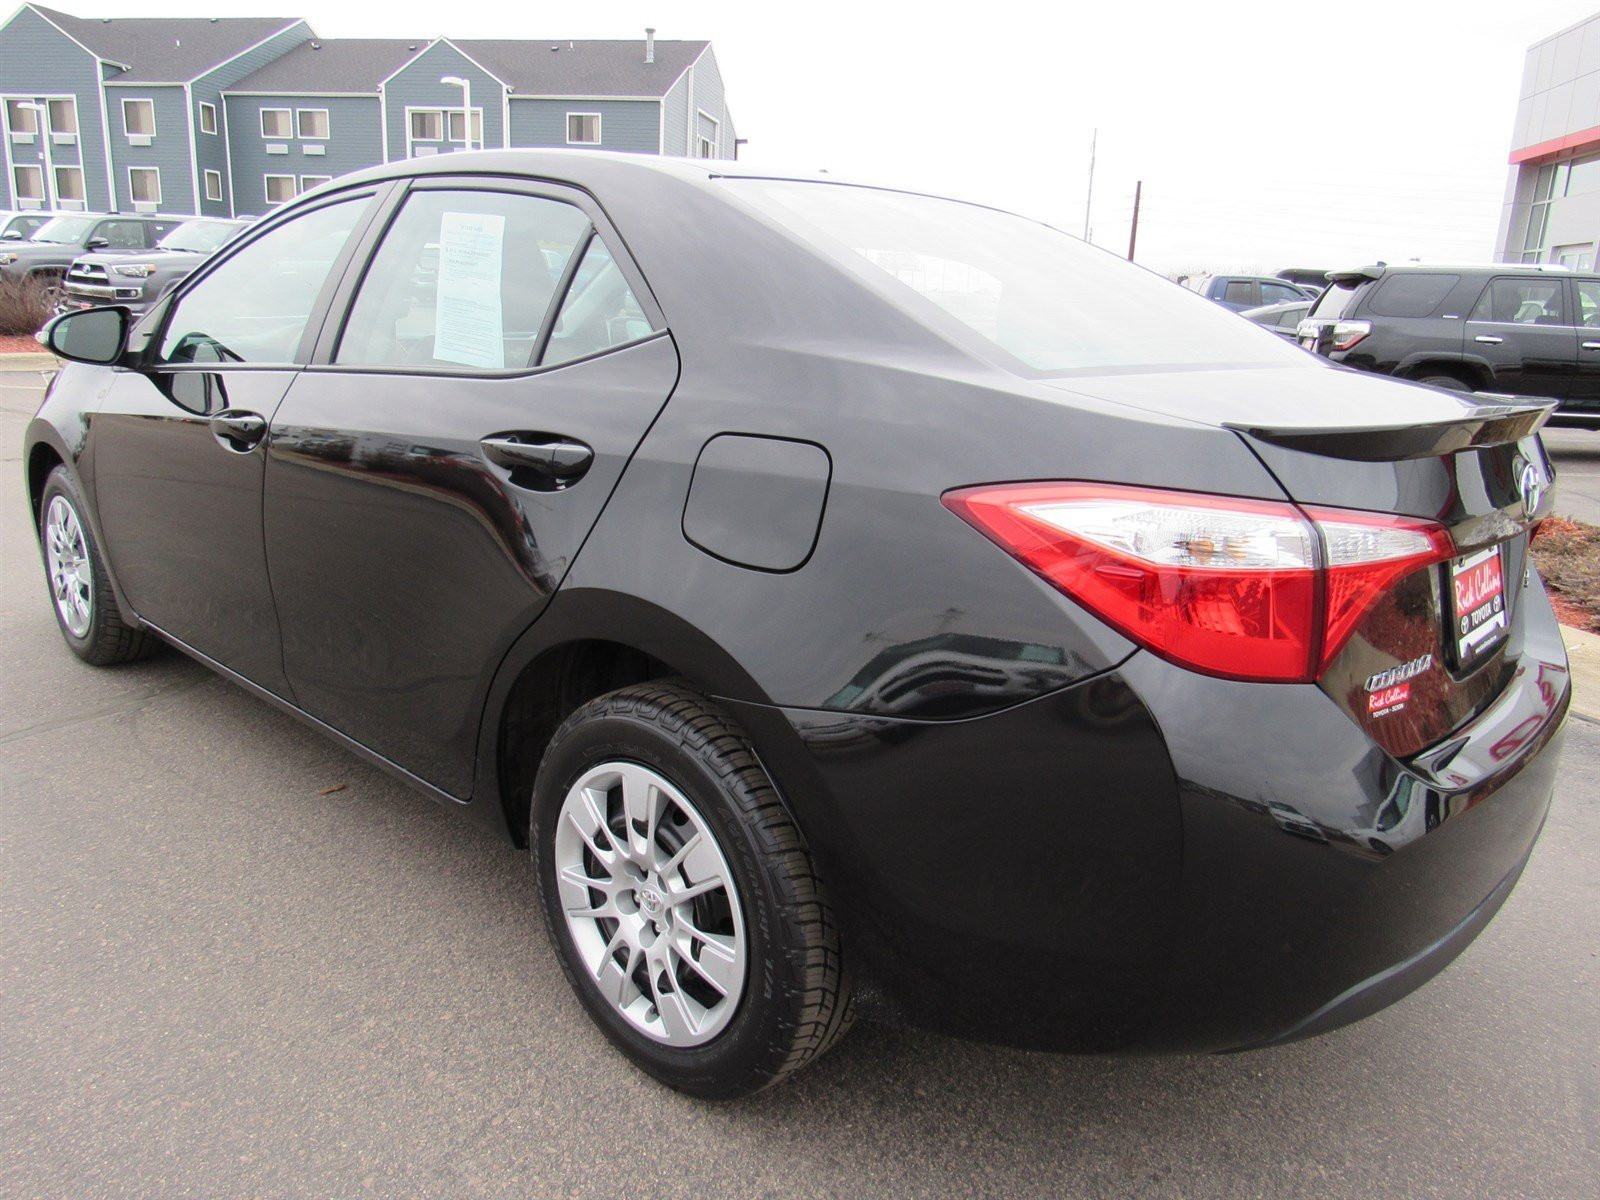 used cars sioux falls fresh used vehicles for sale in sioux city ia of 22 luxury